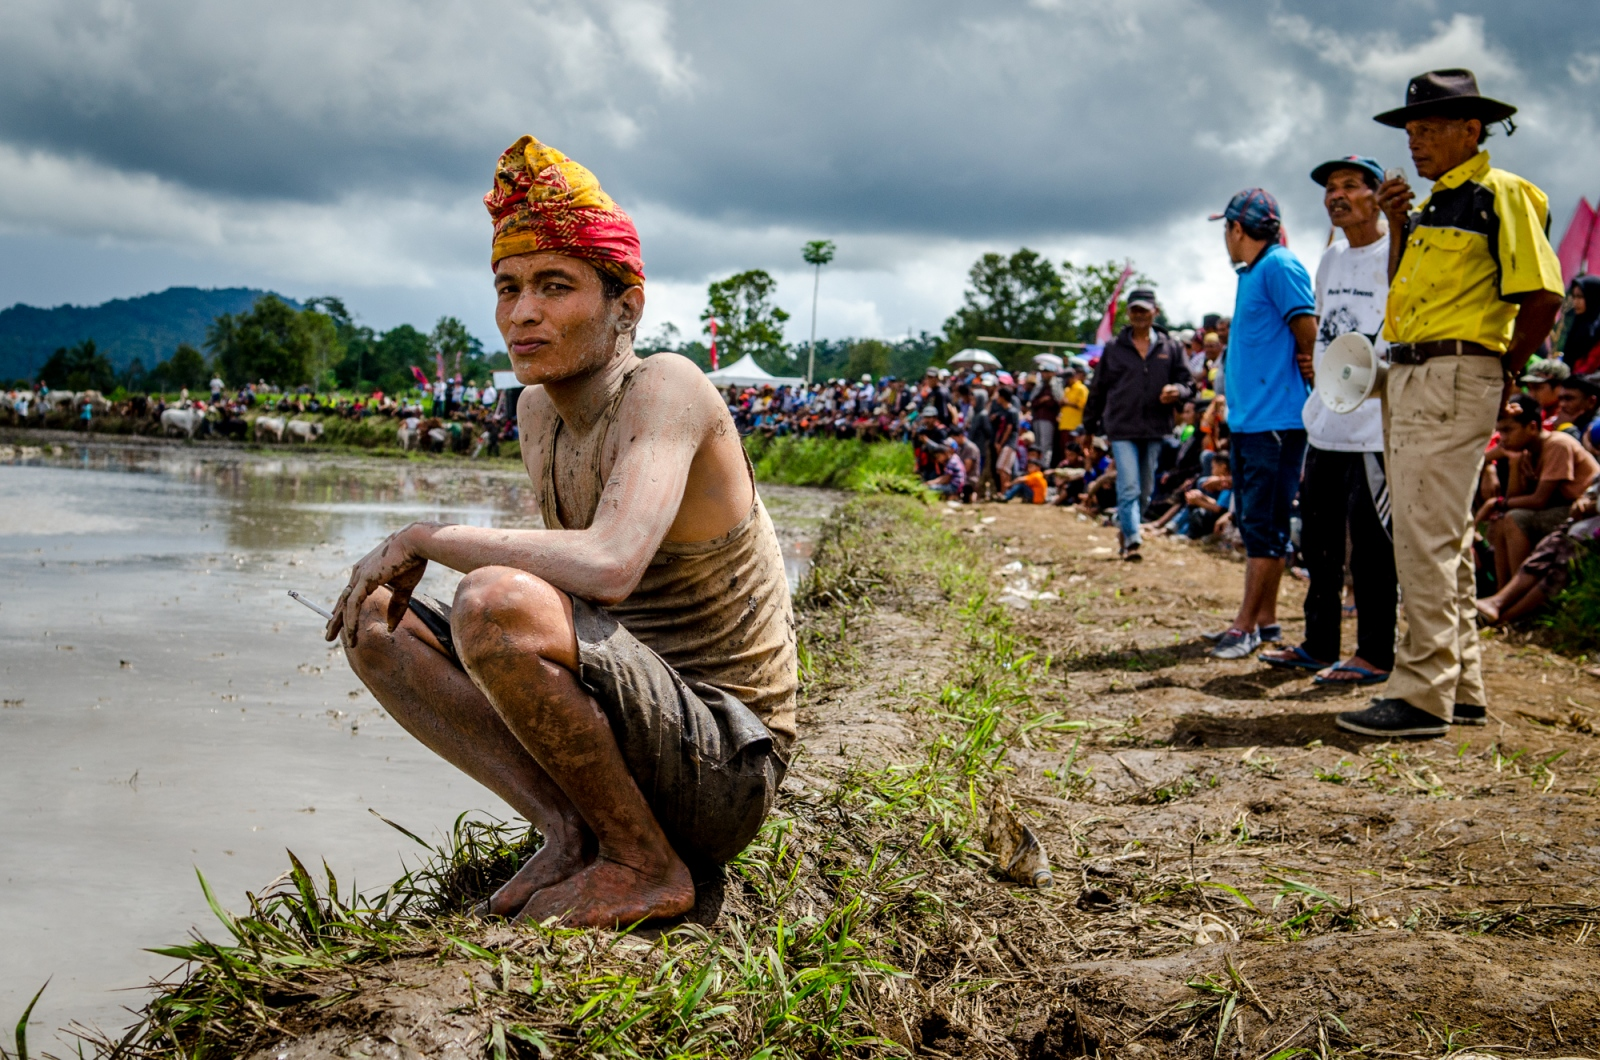 A muddy jockey relaxes with a cigarette between rounds, resting his muscles, catching his breath and taking in the sights. Perched alongside the rice paddy where the races are taking place, this young man must be well aware of his surroundings and ready to jump out of the way if any bulls decide to bolt over the ledge. When a pair of bulls arrive to the starting line in need of a jockey, he will mount back off to race down the track he sits in front of.